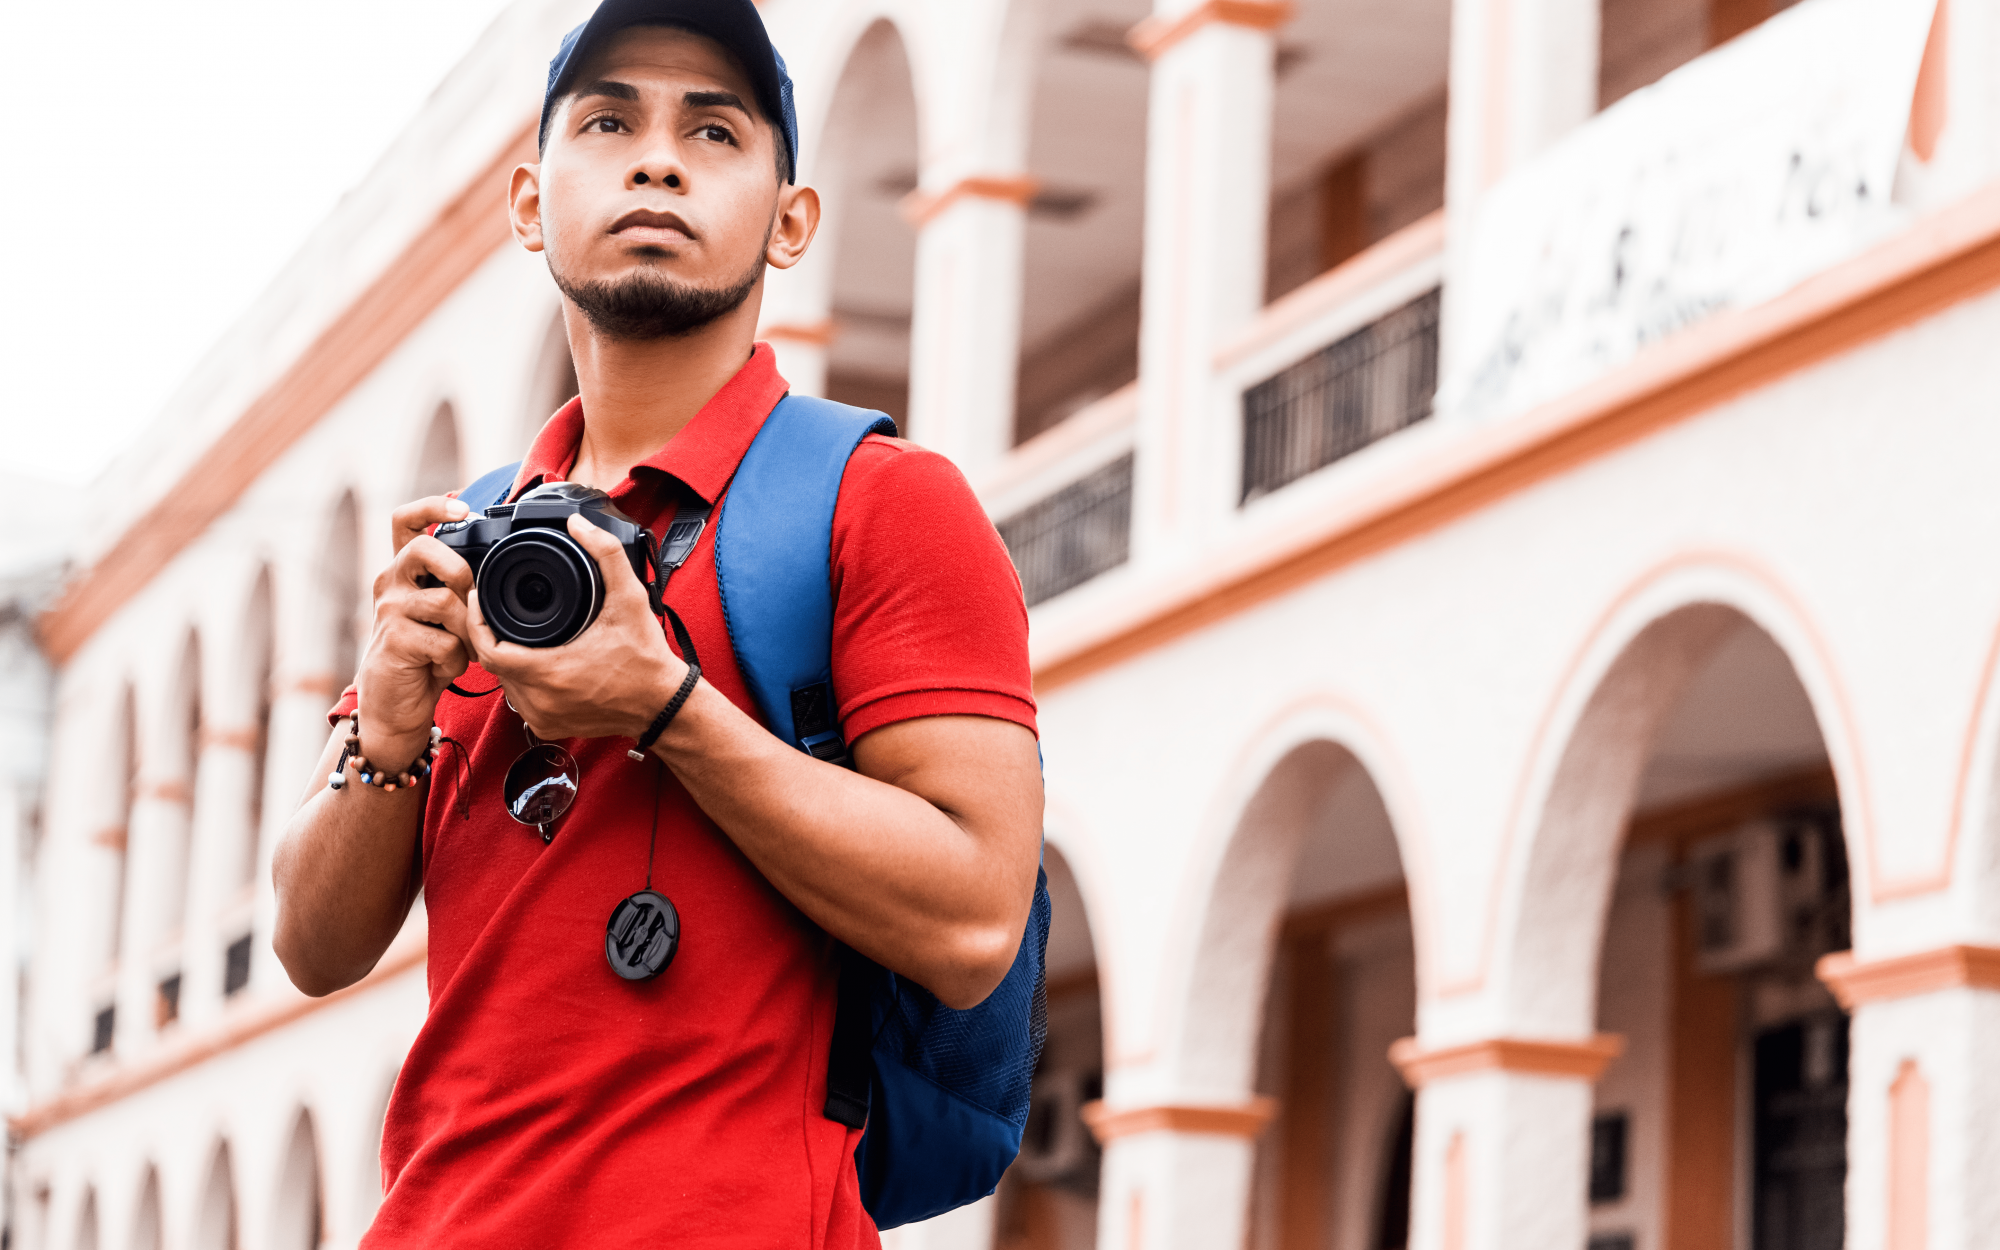 10 Different Types of Photography to Pursue as a Professional